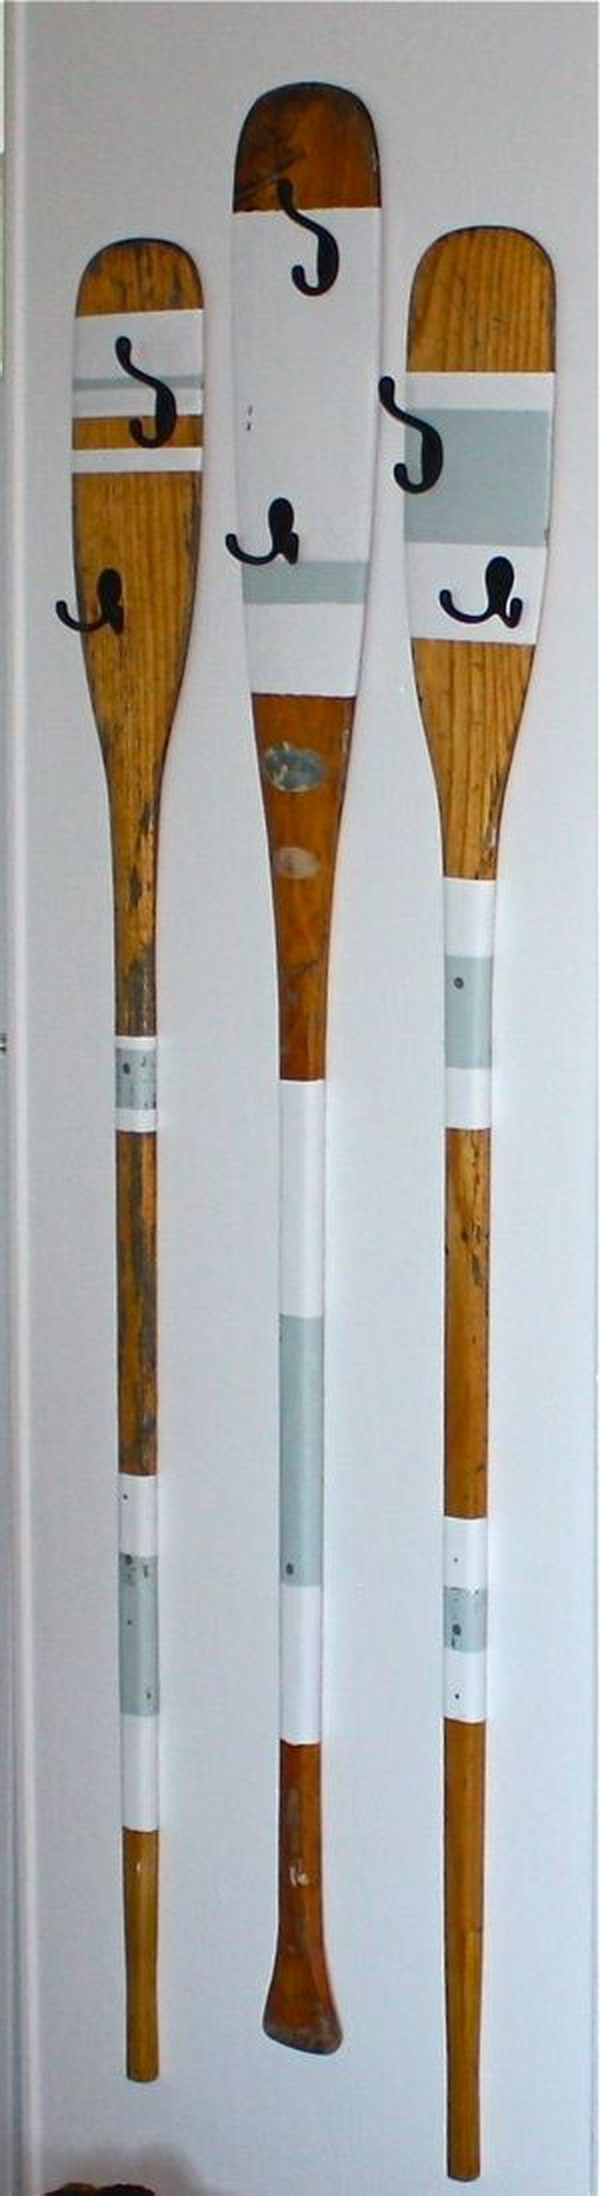 Upcycled Rowing Oars into Coat Hangers.